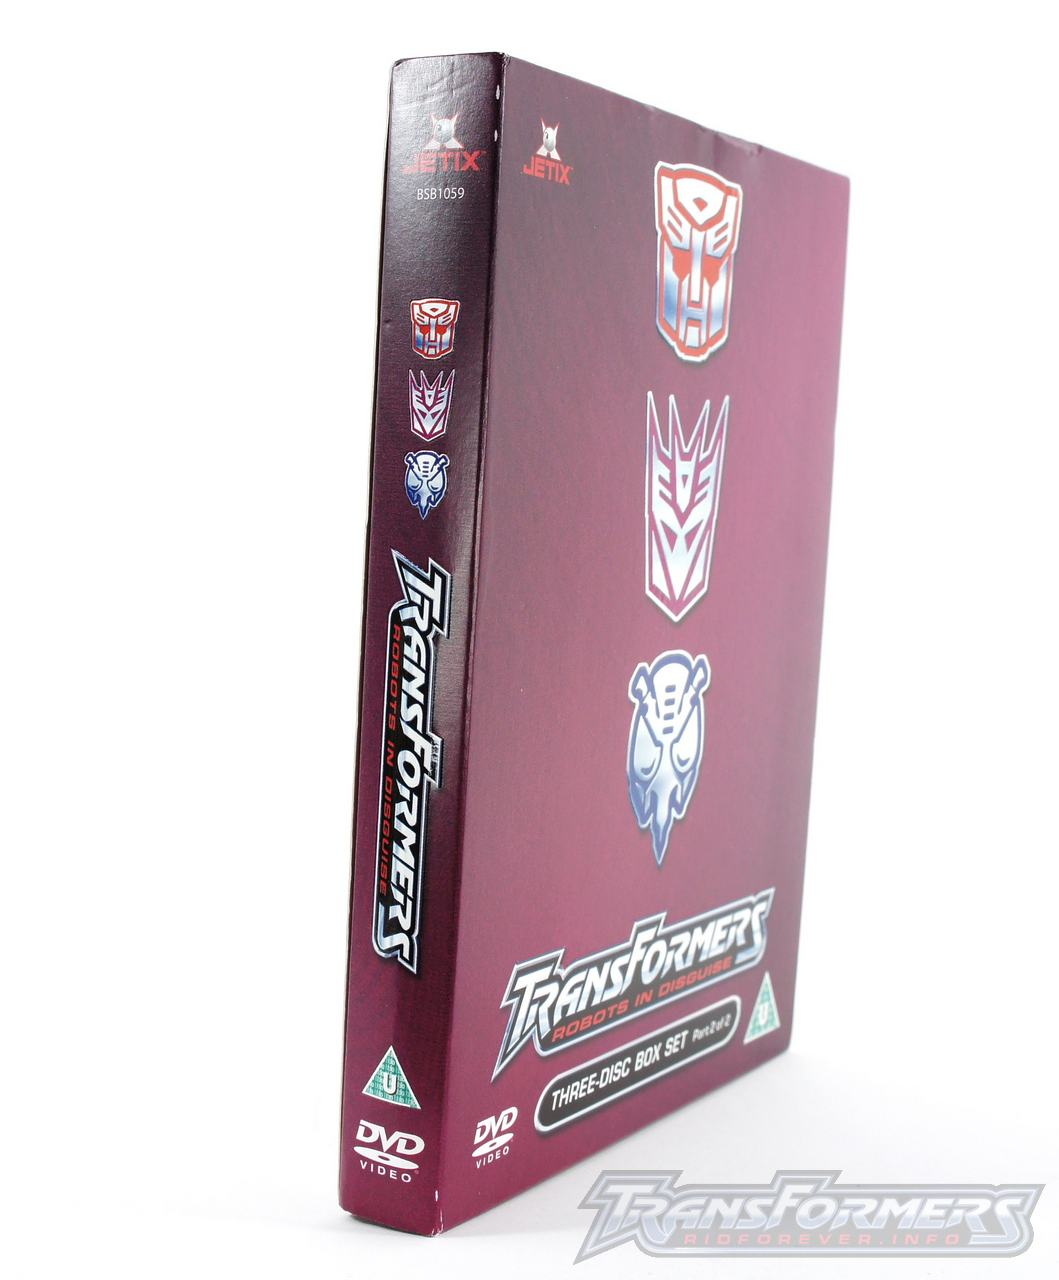 UK RID Boxset 1 Vol 2-002